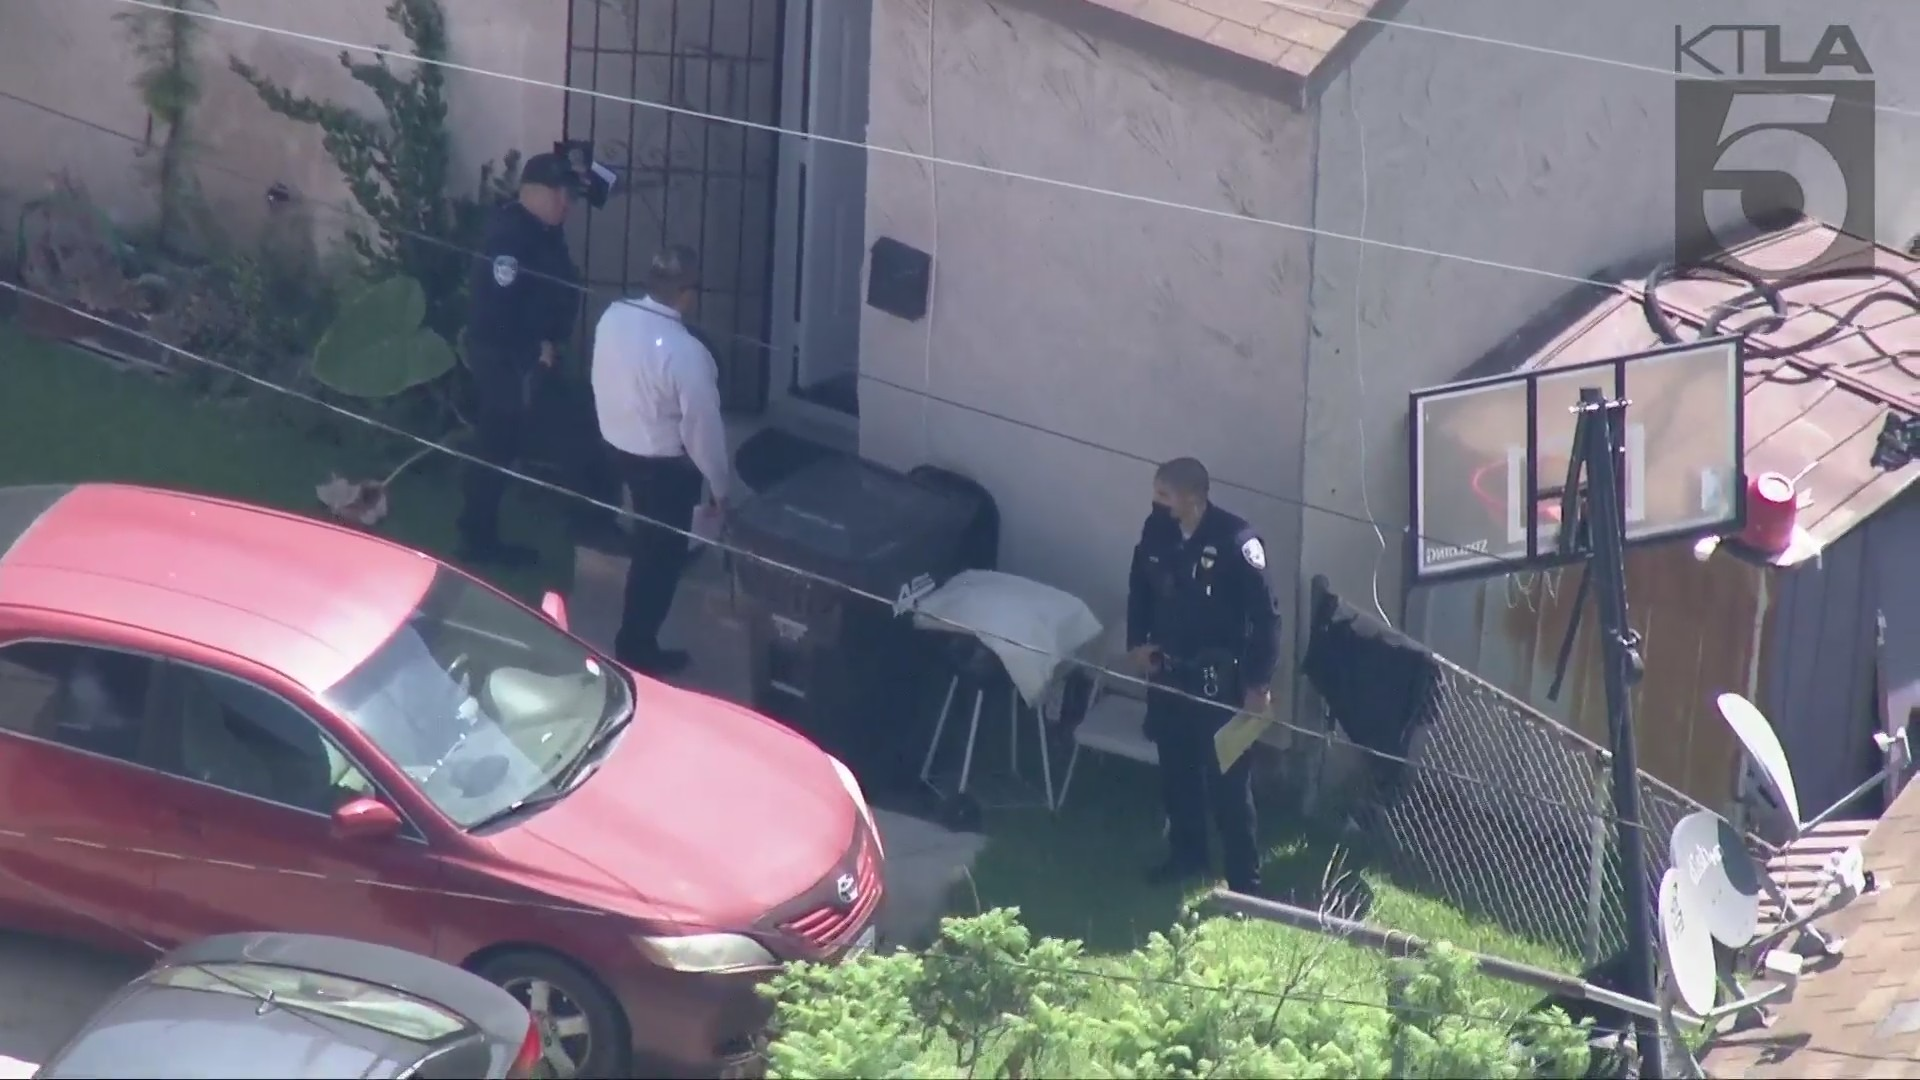 Authorities investigate after a woman was found dead in Bell Gardens on July 28, 2021. (KTLA)